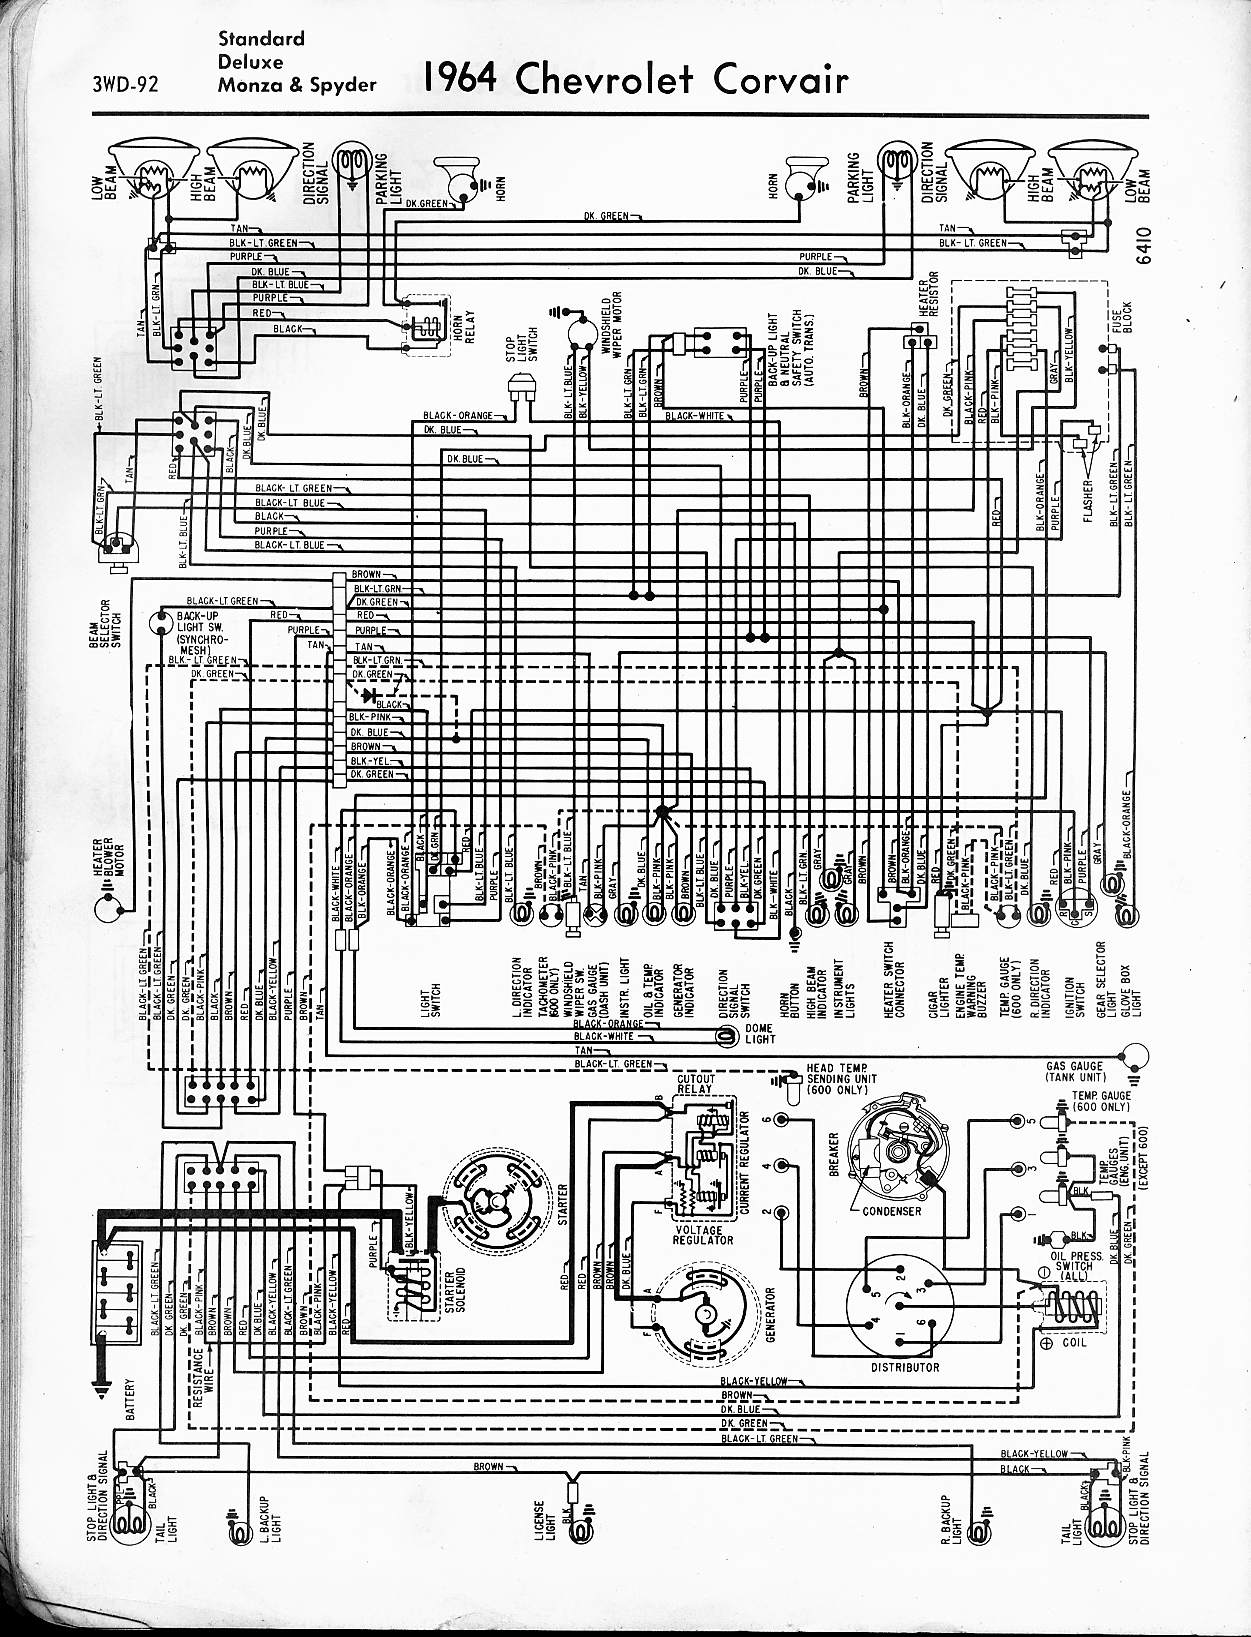 1963 corvair fuse box 57 - 65 chevy wiring diagrams 1966 corvair fuse box